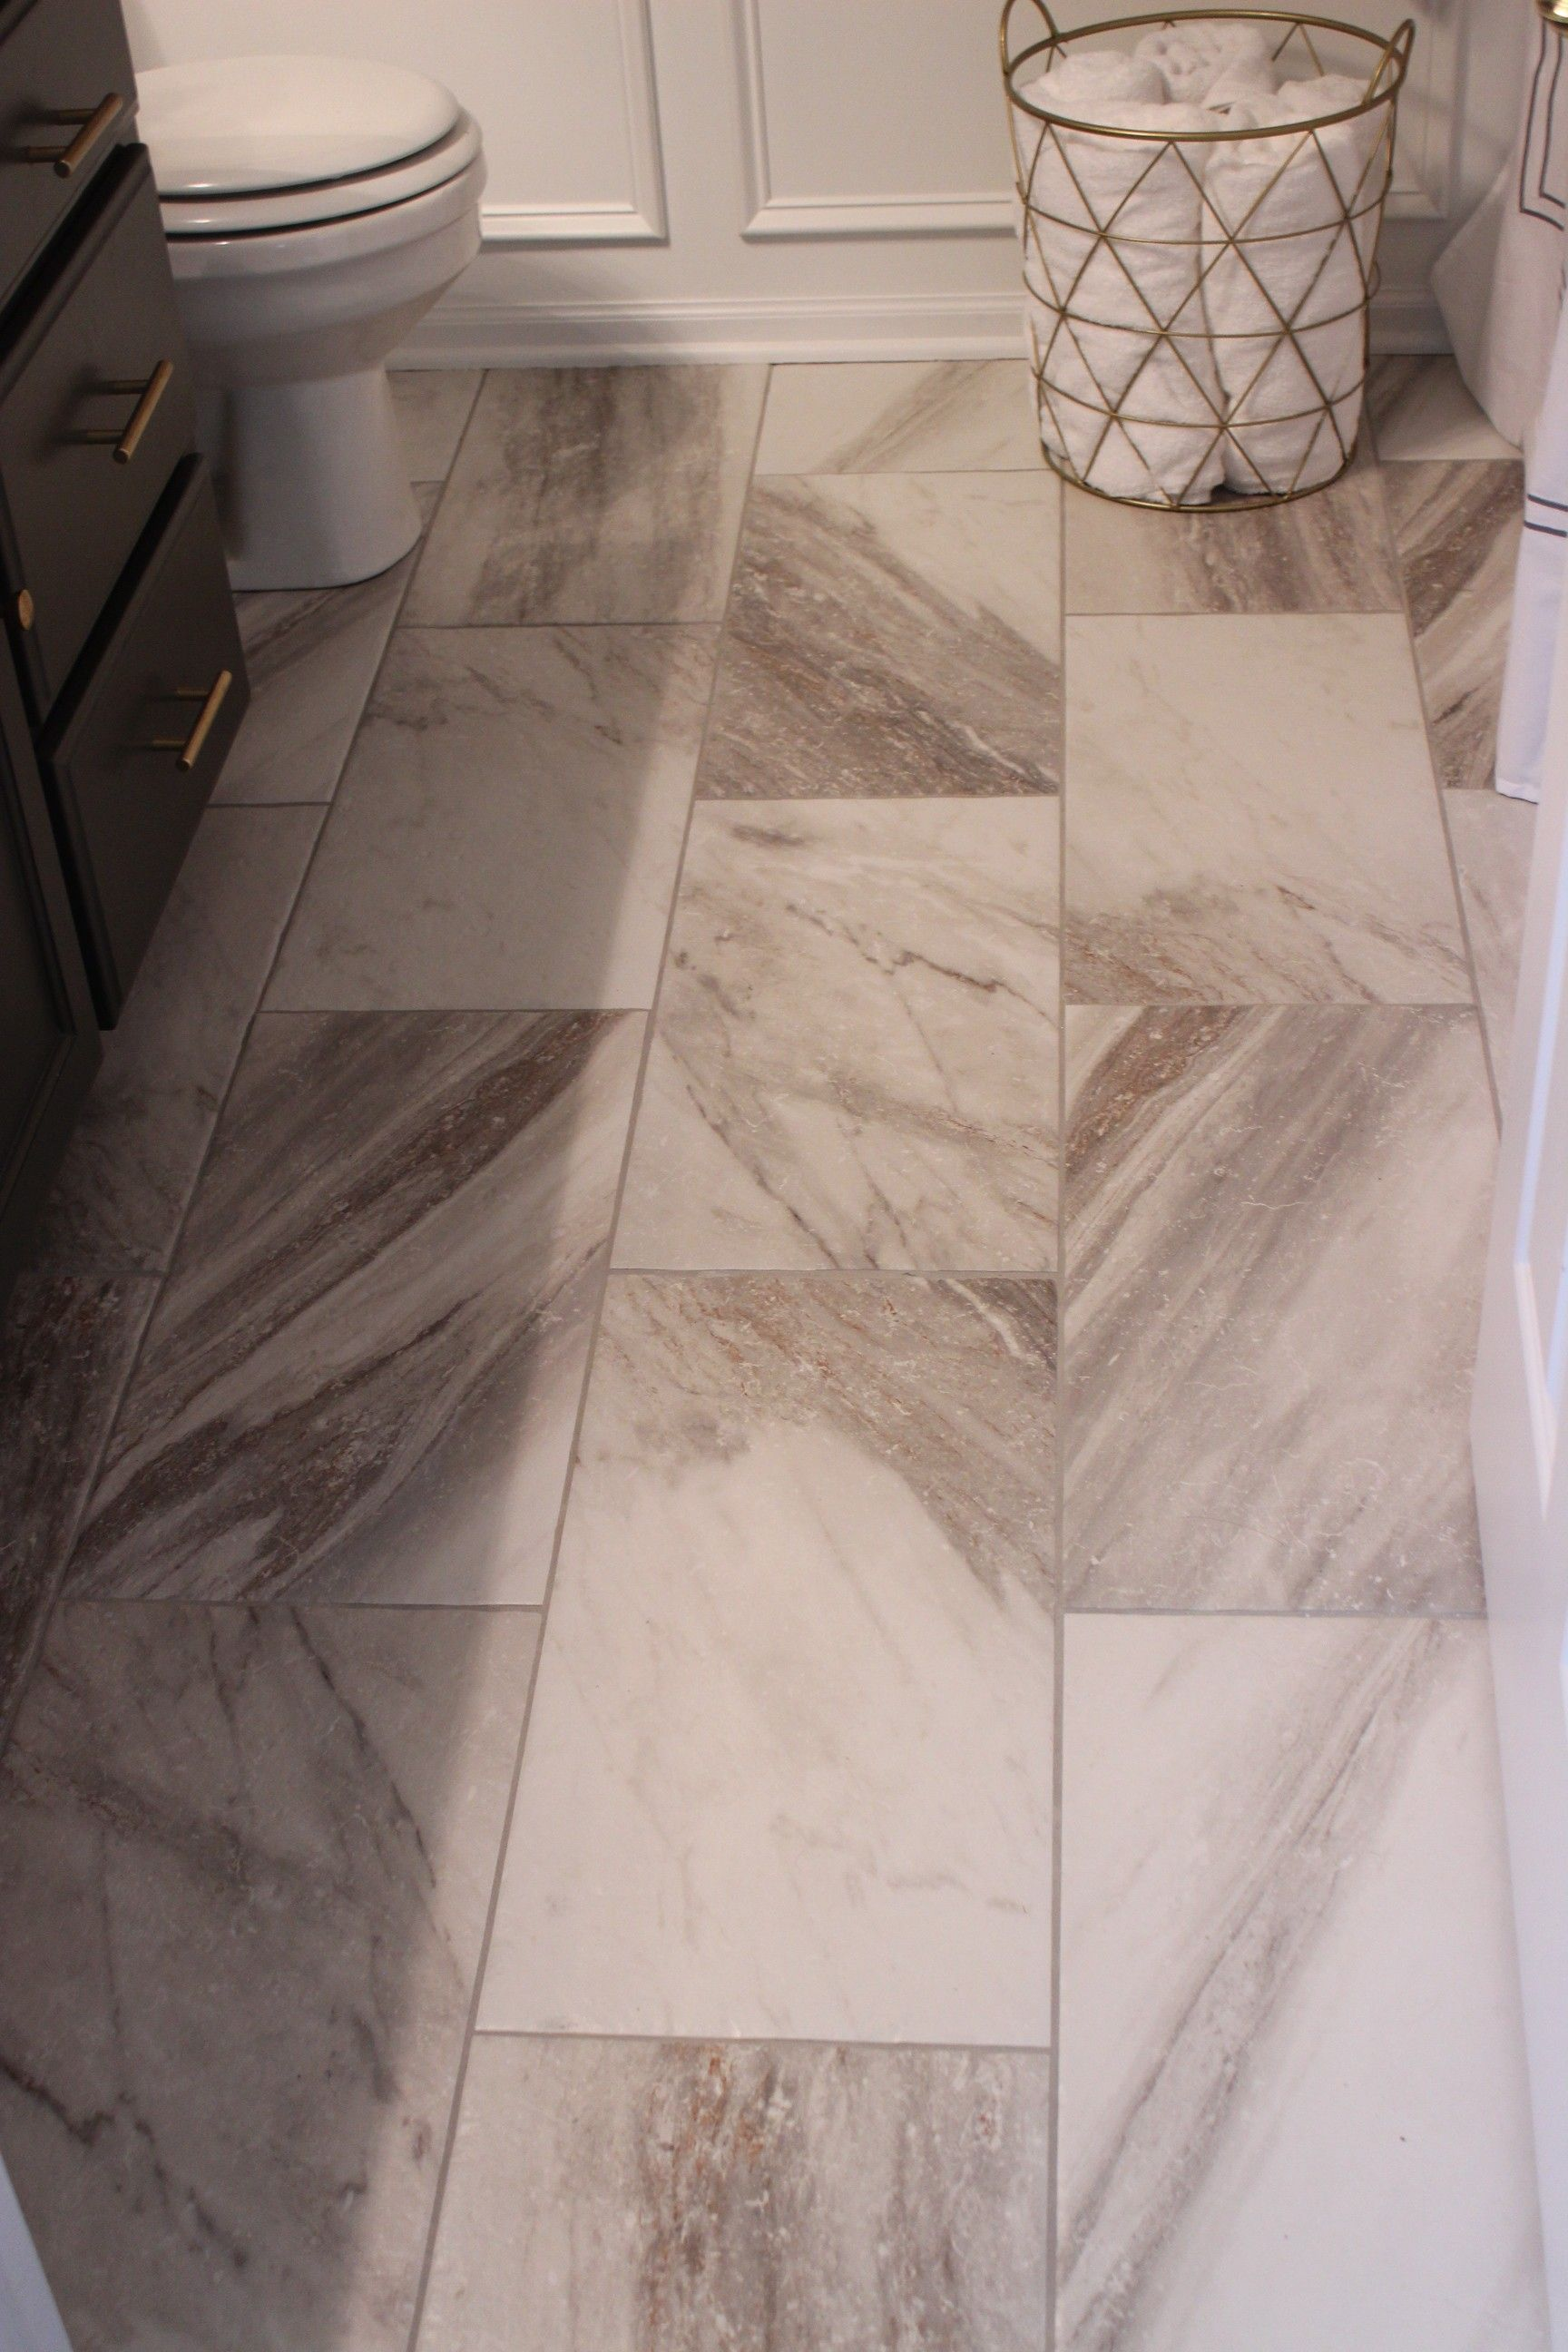 Sovereign stone pearl porcelain tile in 12 x 24 at lowes perfect ebs bathroom floor sovereign stone pearl porcelain tile in 12 x 24 at lowes dailygadgetfo Image collections